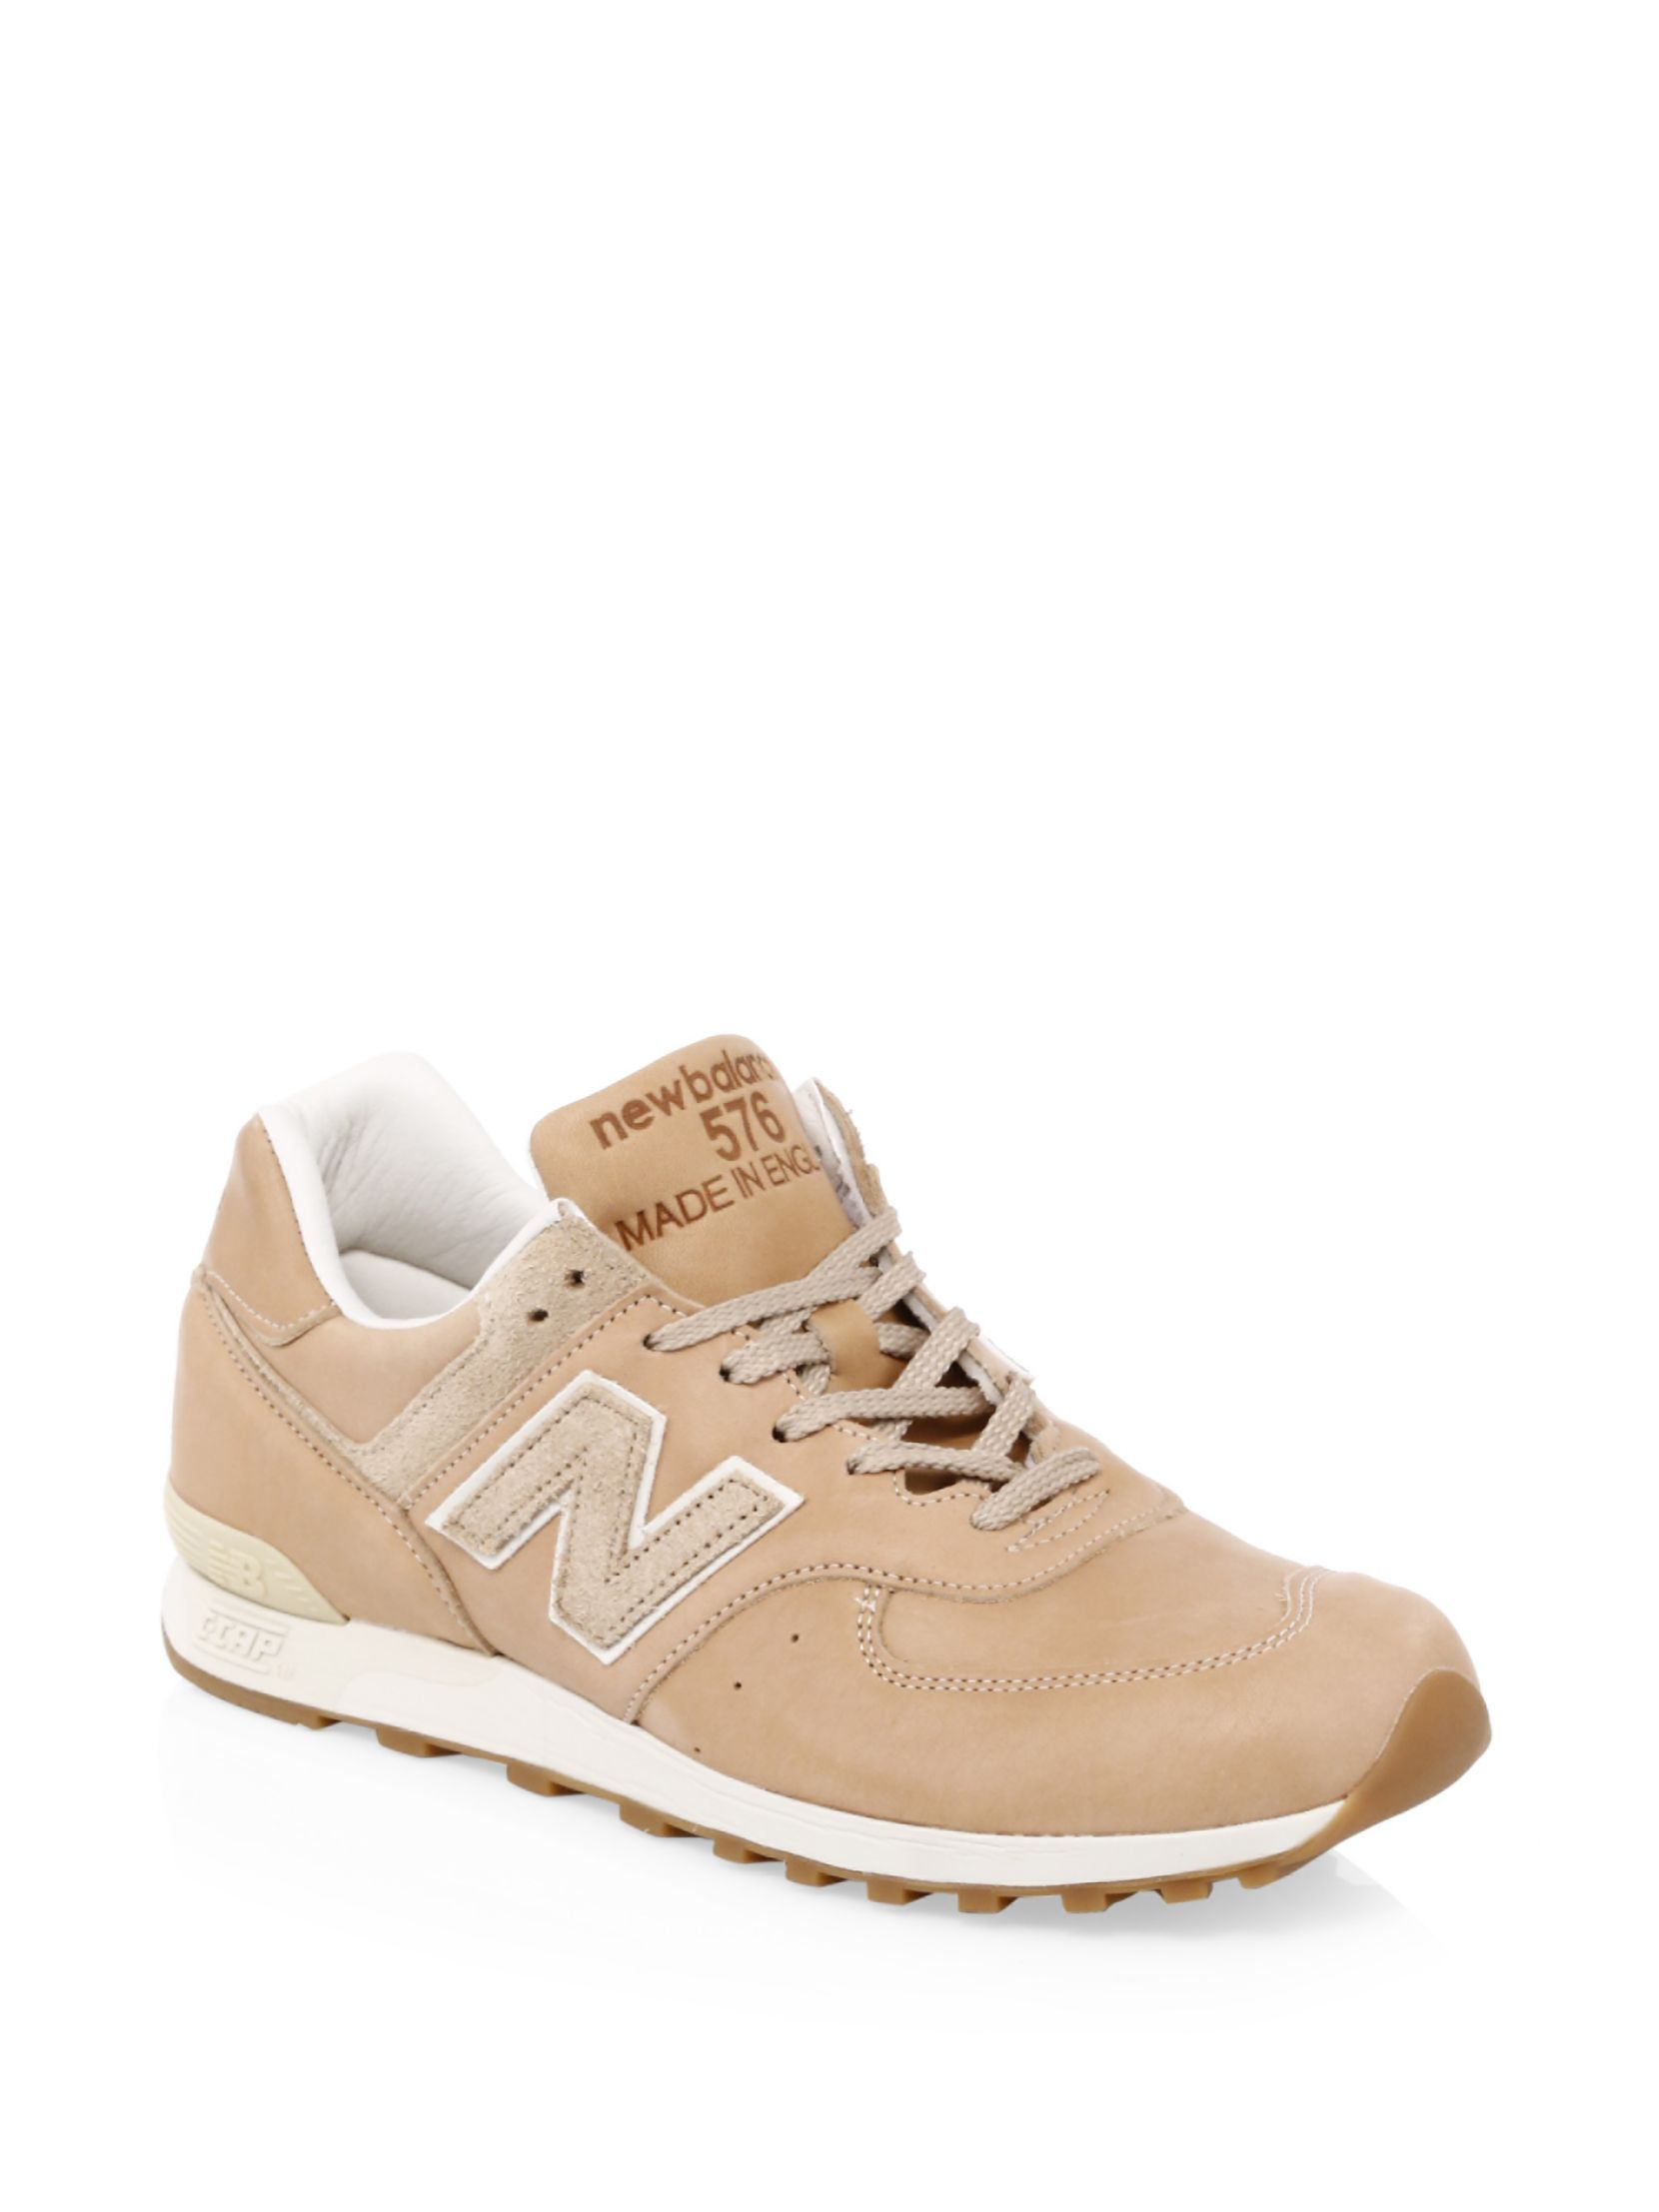 New Balance Collab Stussy Low-Top Sneakers 7VsKj9IOs